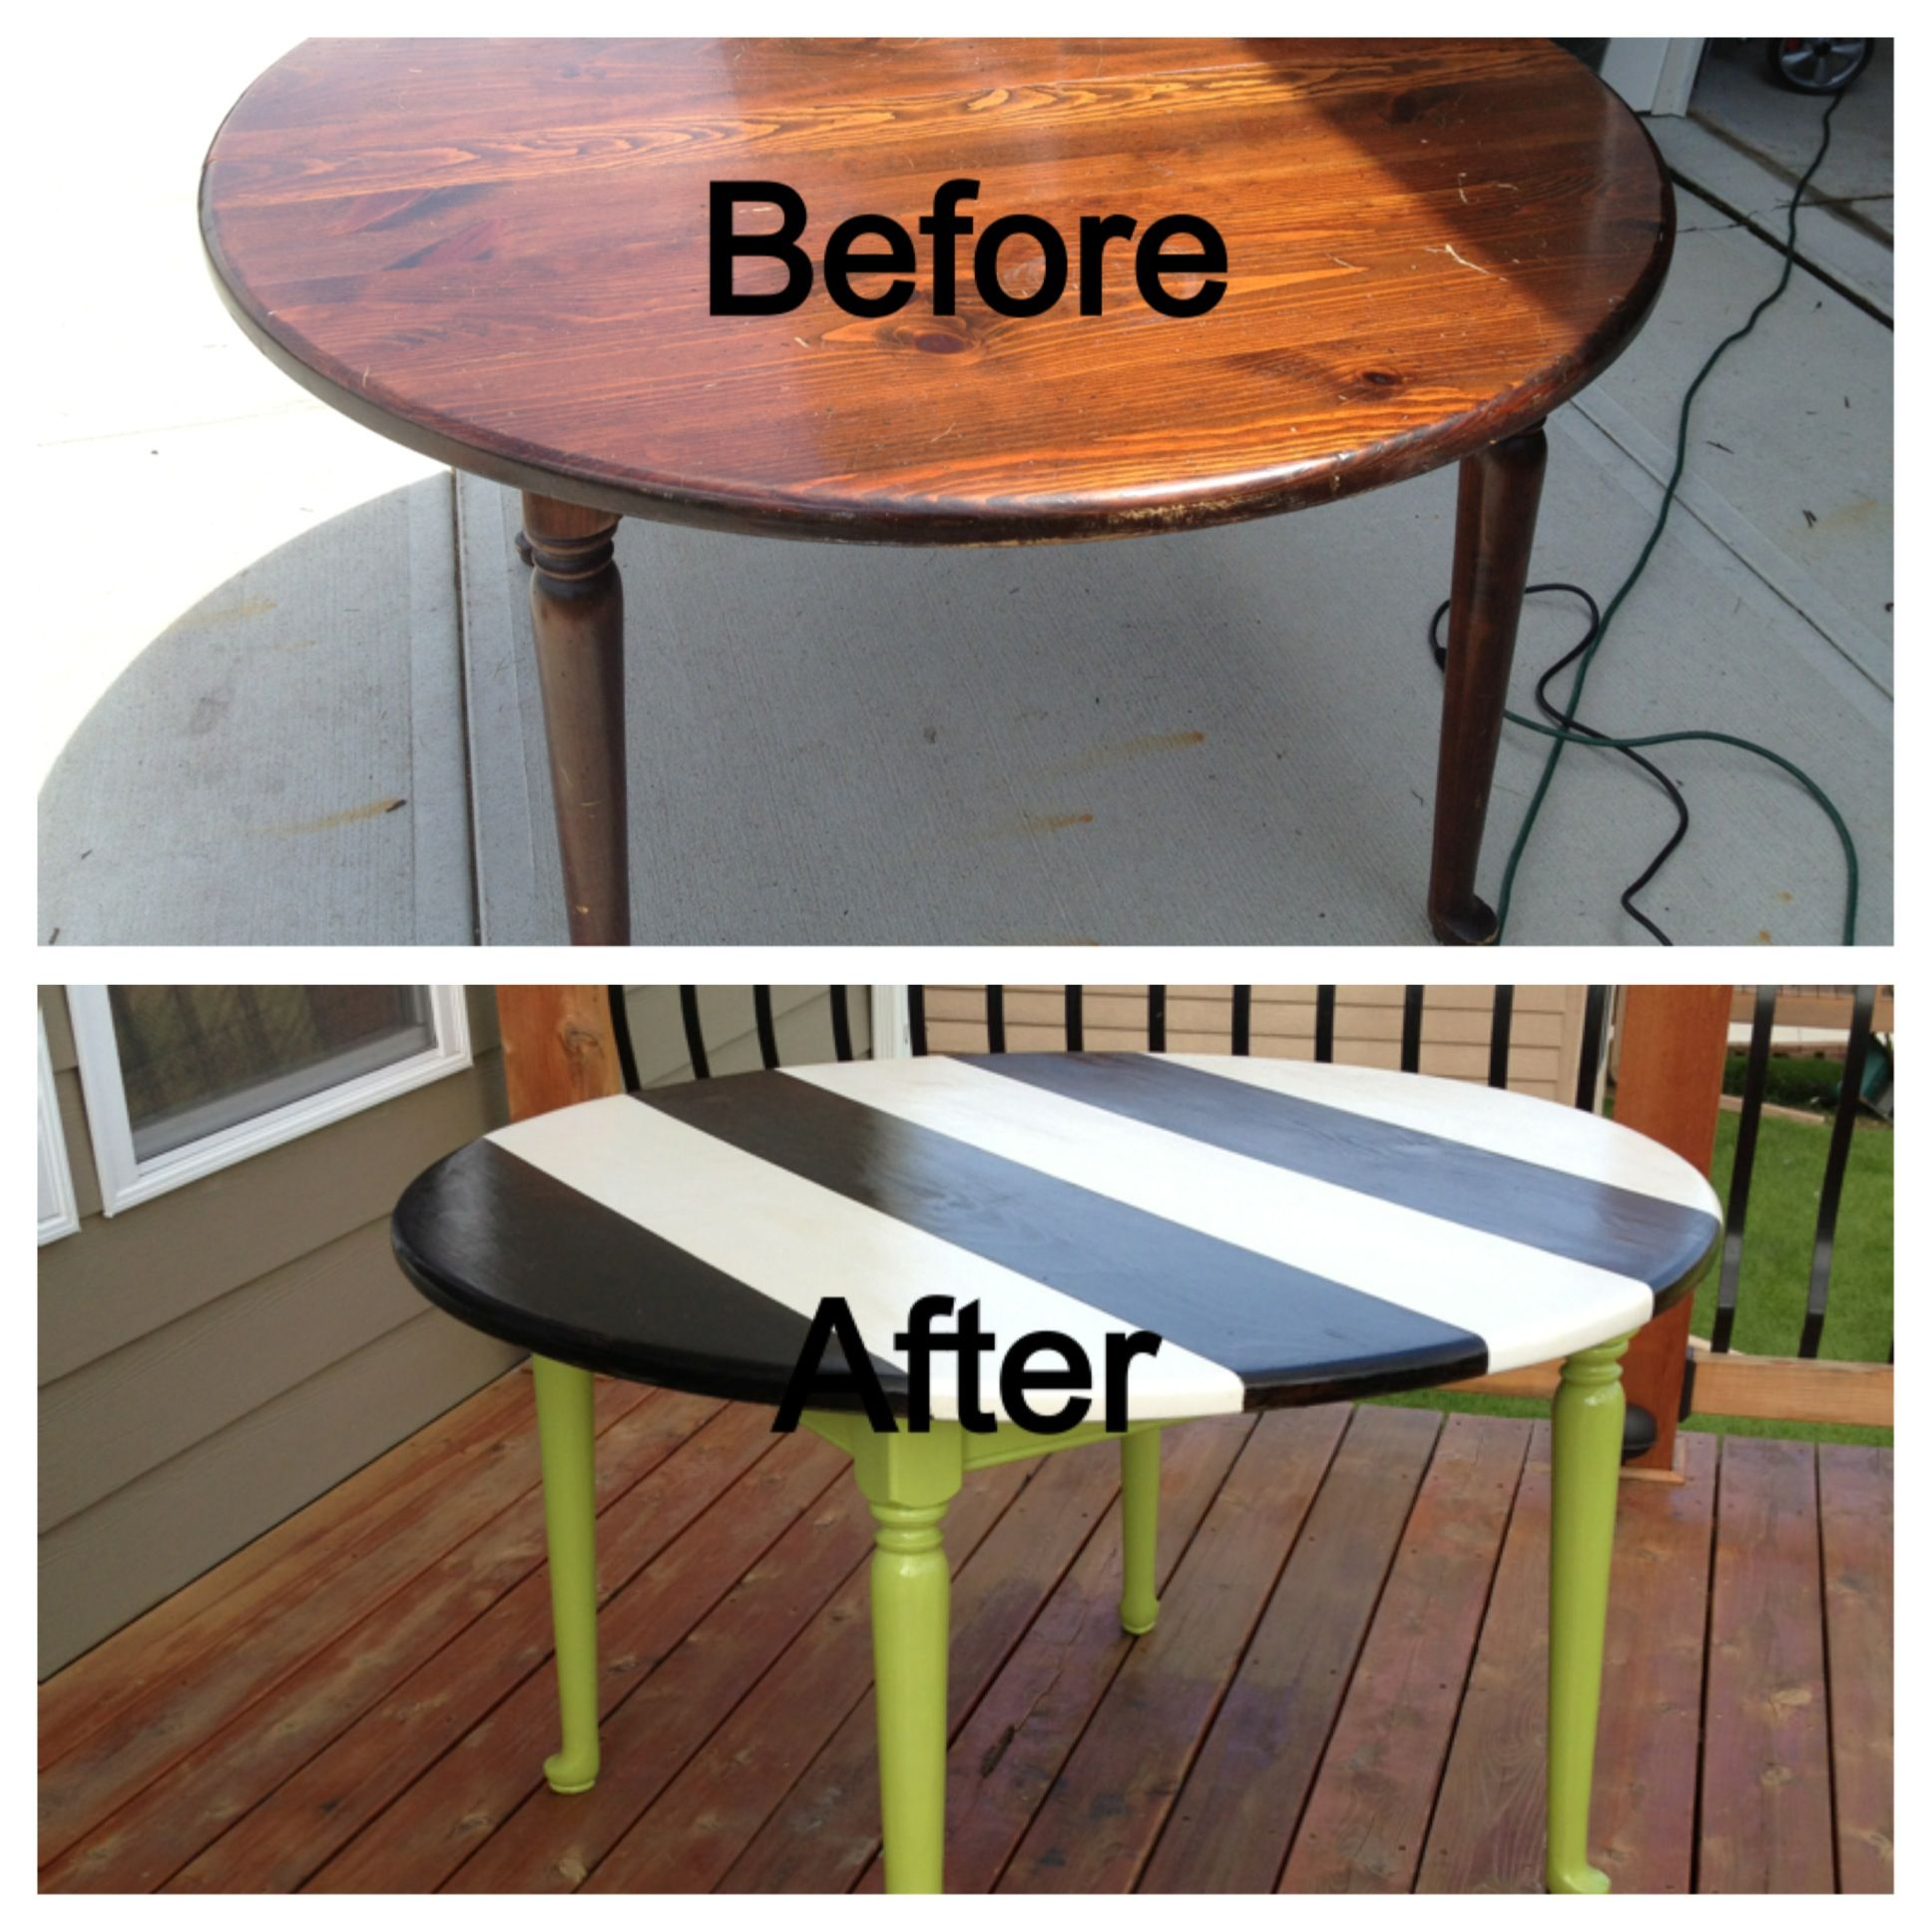 Refurbished Kitchen Table And Chairs: Refurbished Kitchen Table. Black And White Striped Table With Lime Green Base.